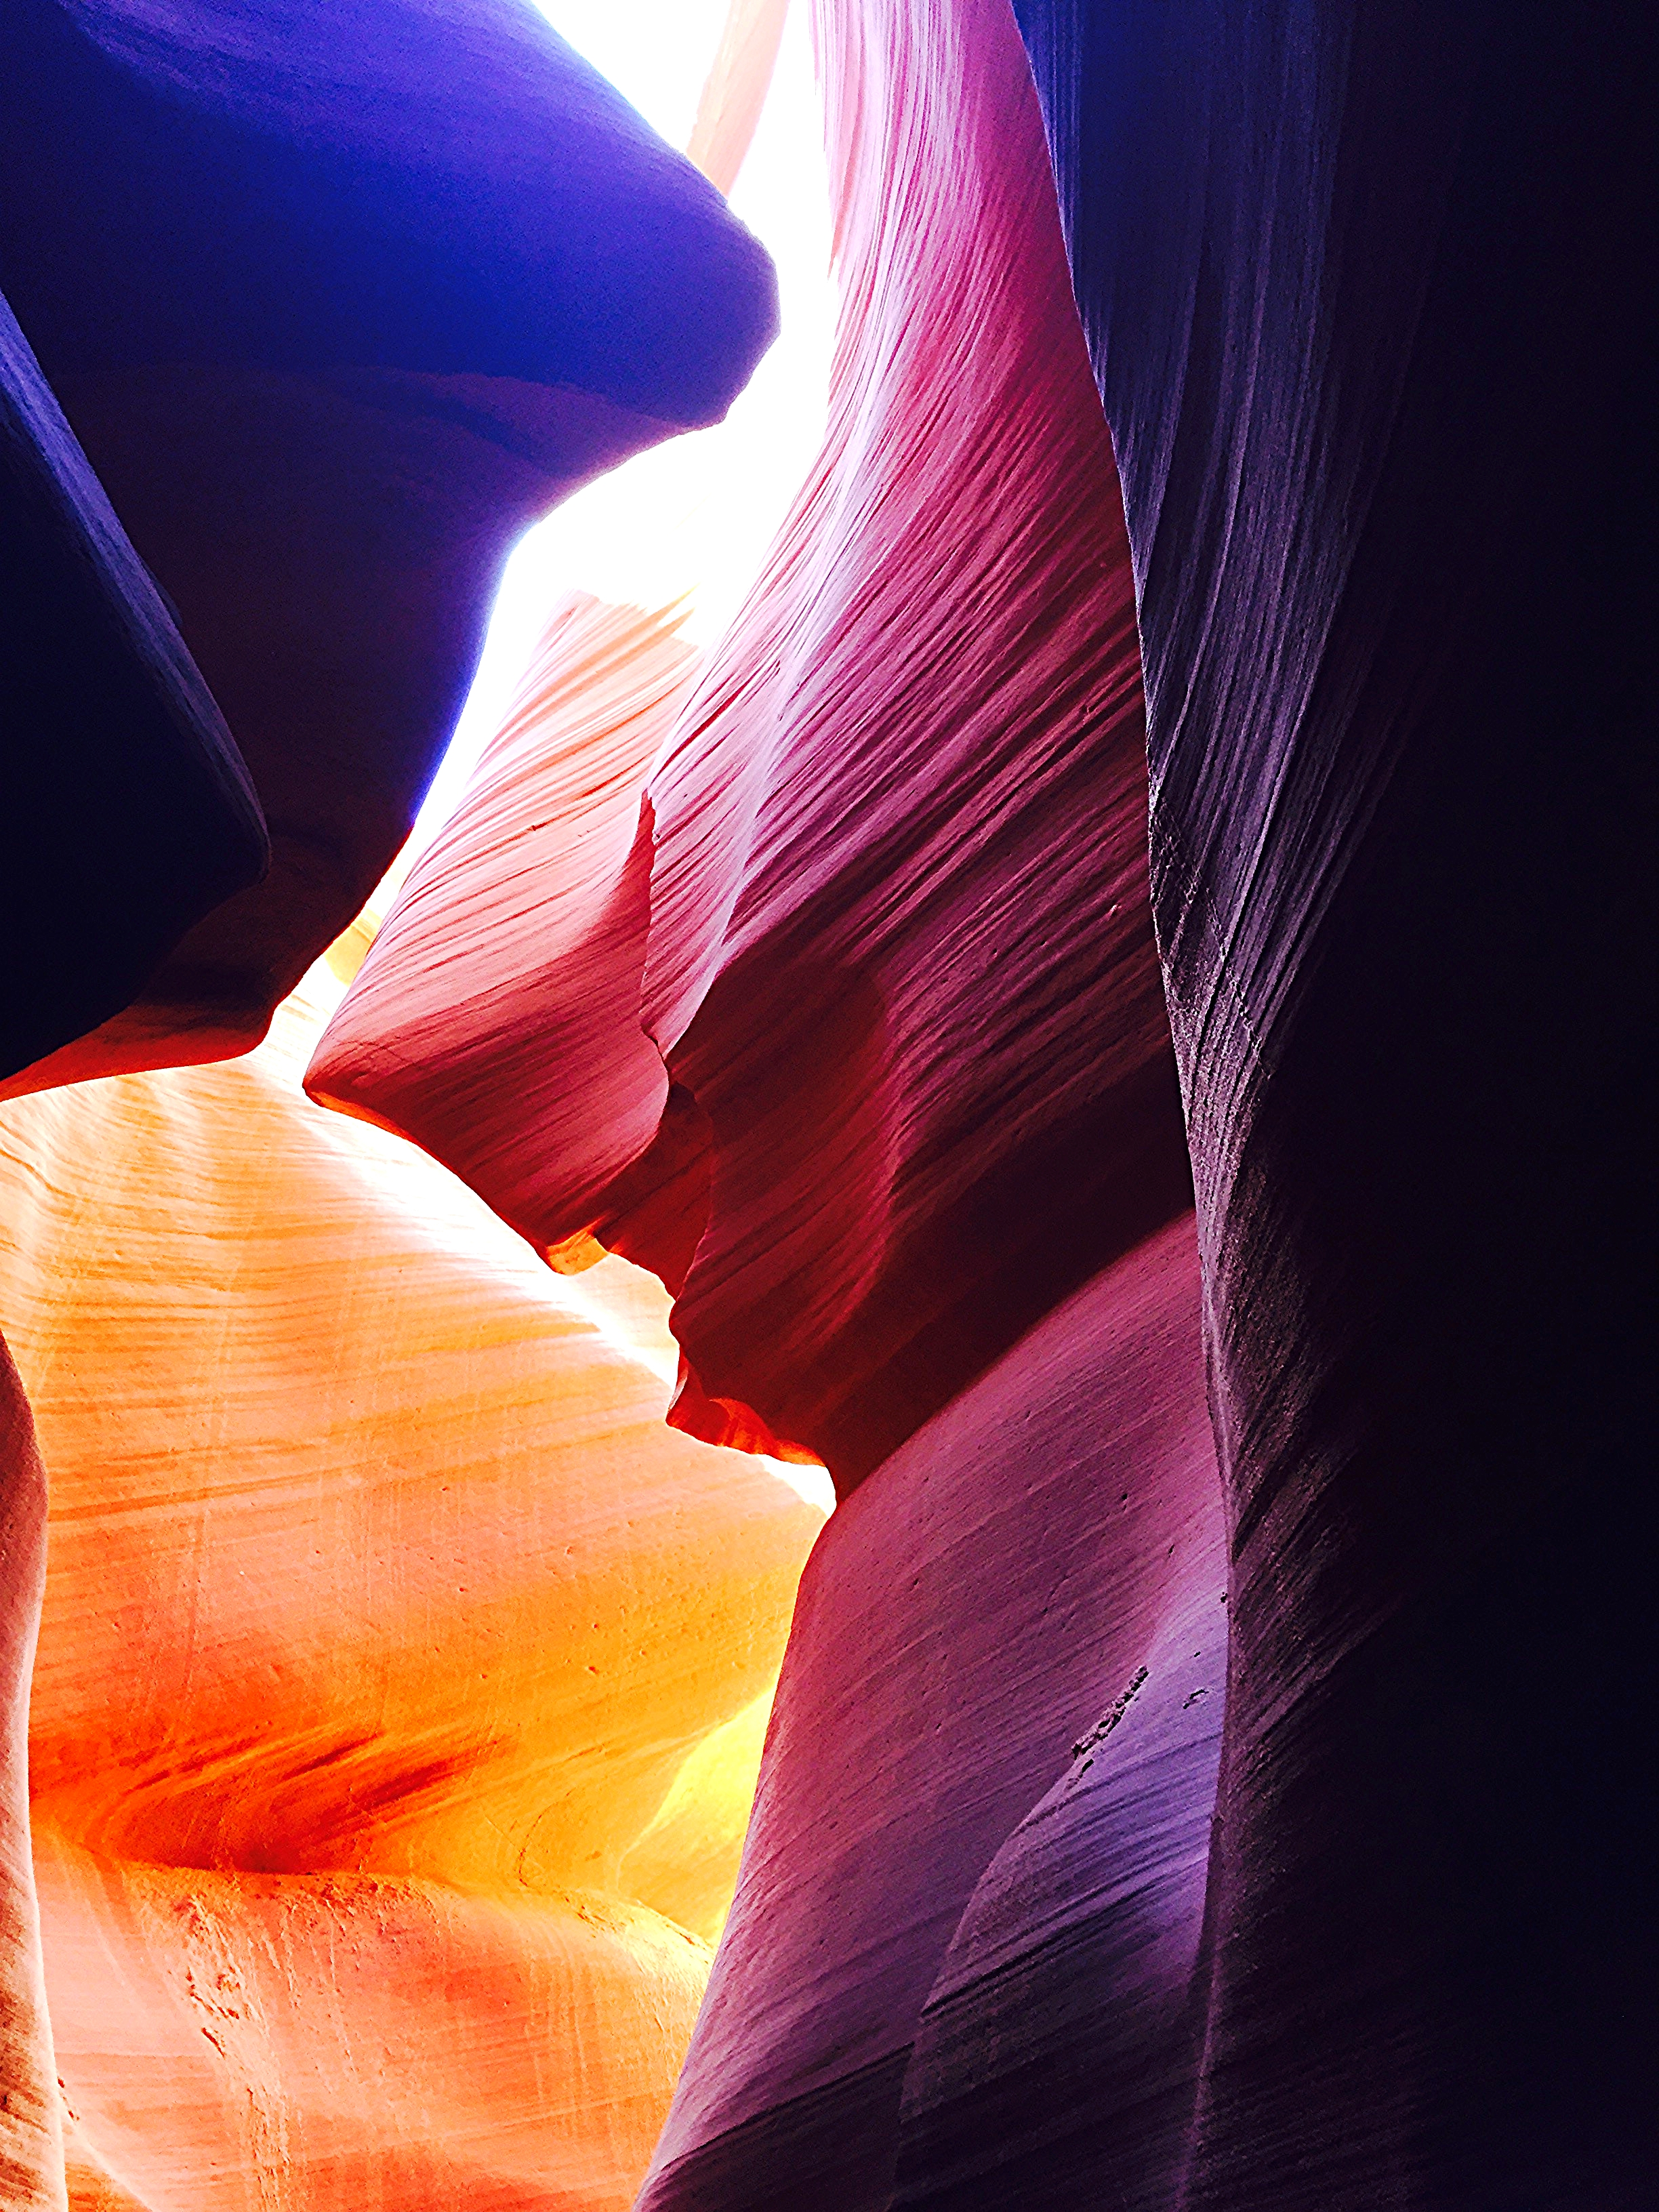 """Finding Nemo Shark"" in Lower Antelope Canyon"